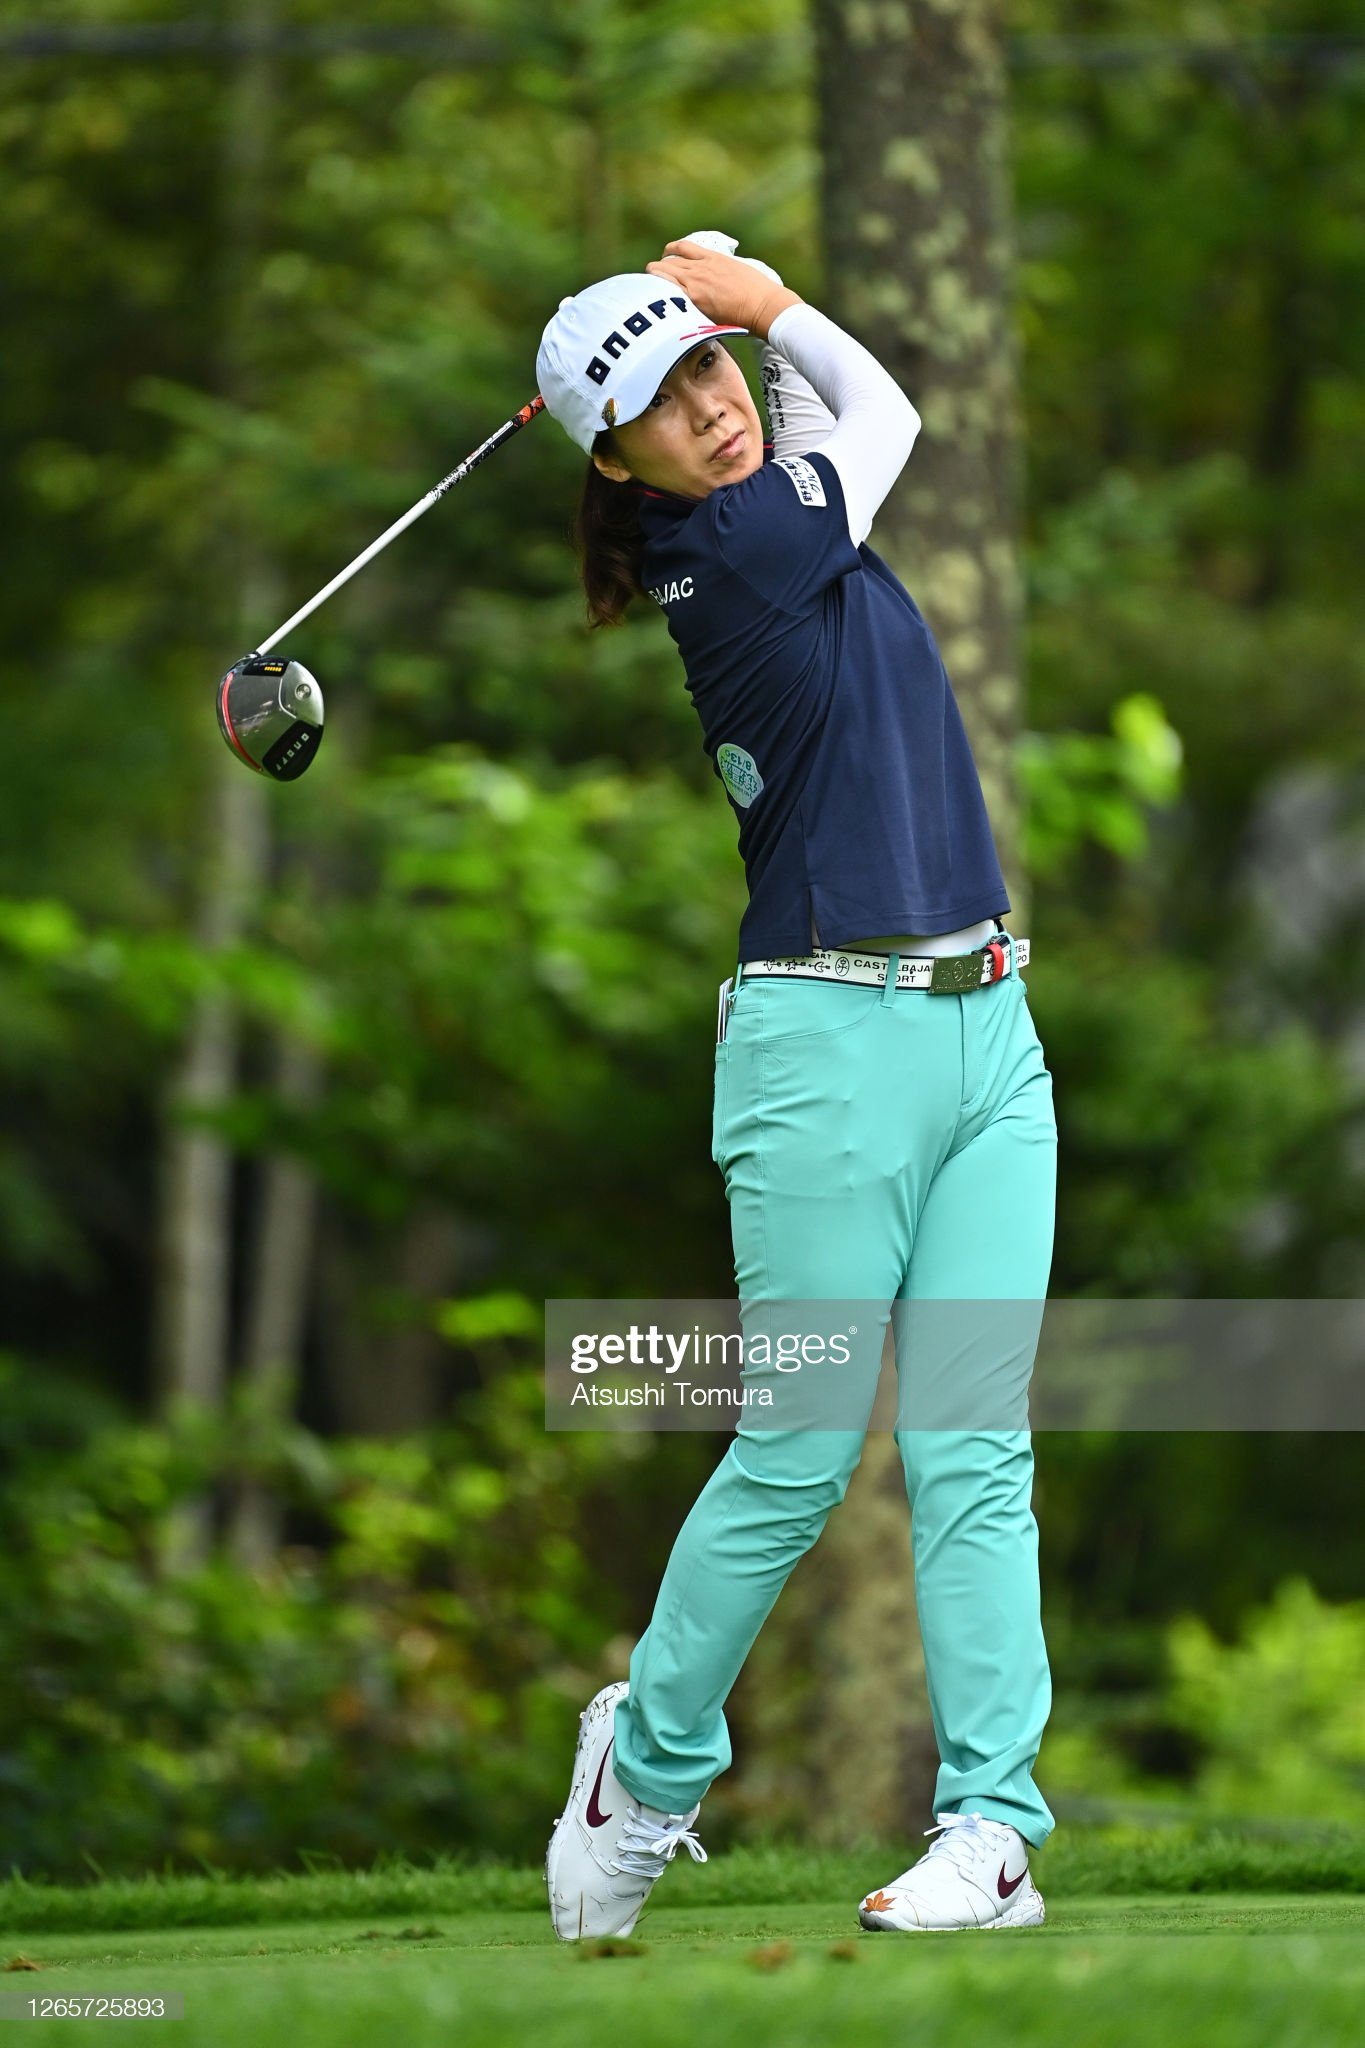 https://media.gettyimages.com/photos/jihee-lee-of-south-korea-plays-a-shot-on-the-11th-hole-during-a-of-picture-id1265725893?s=2048x2048